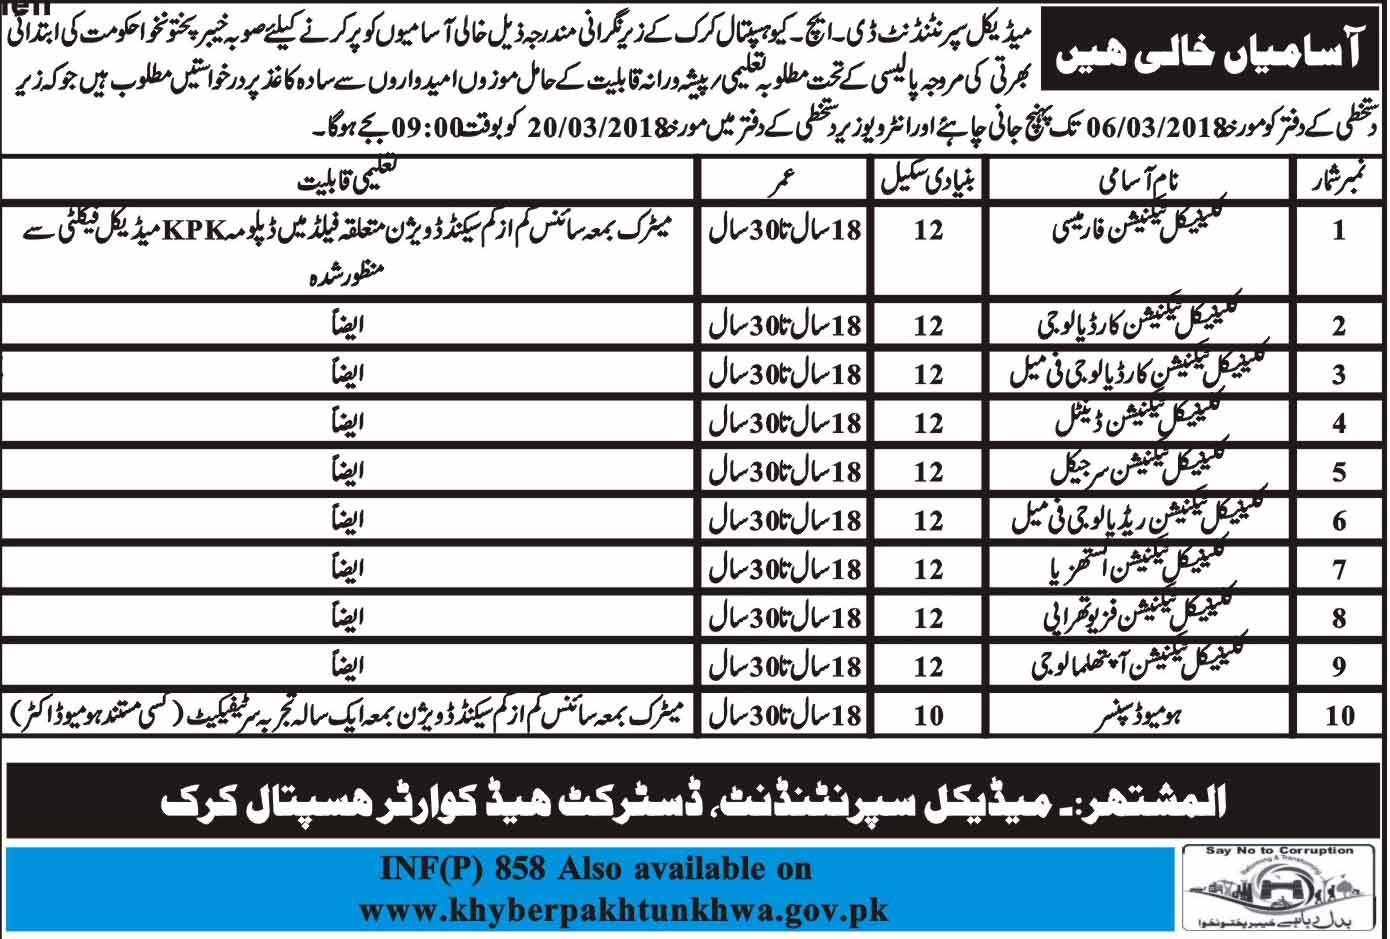 District Headquarter Hospital Karak KPK New Jobs 20th February 2018 Daily Mashriq Newspaper